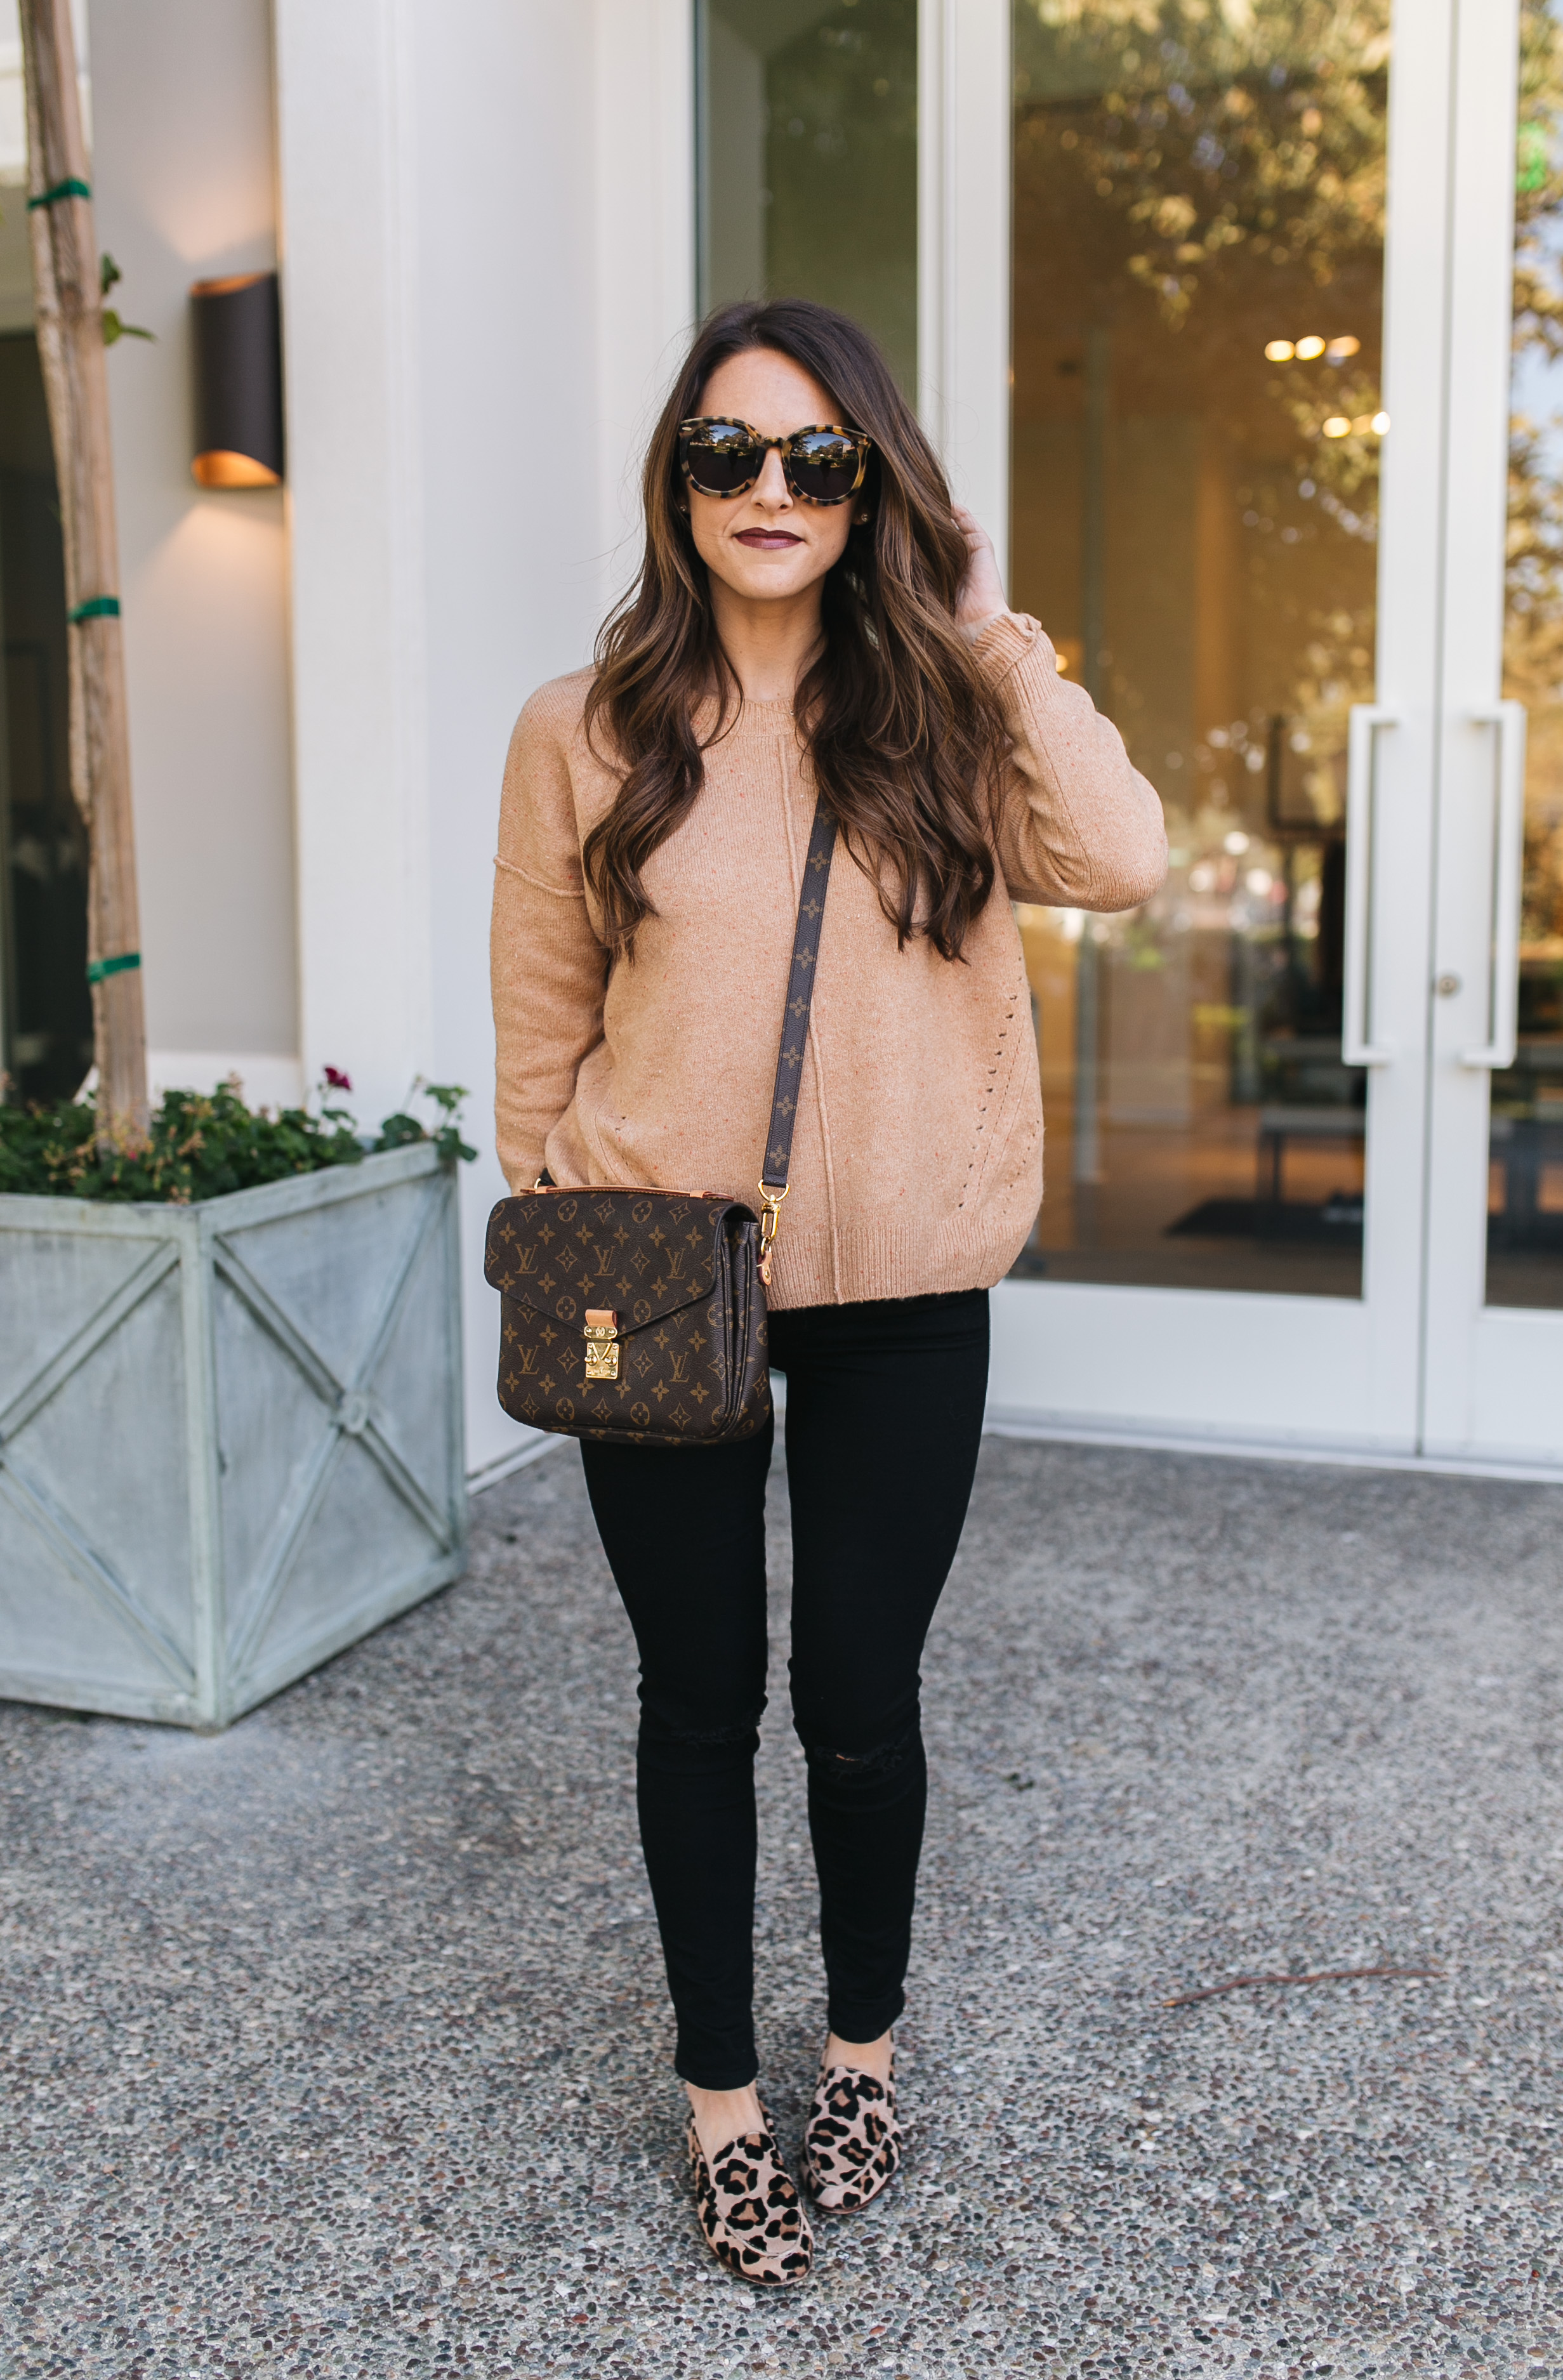 Fashion blogger Daryl-Ann Denner styles a Fall outfit with a Topshop camel sweater, black jeans, and leopard flats, and louis vuitton bag